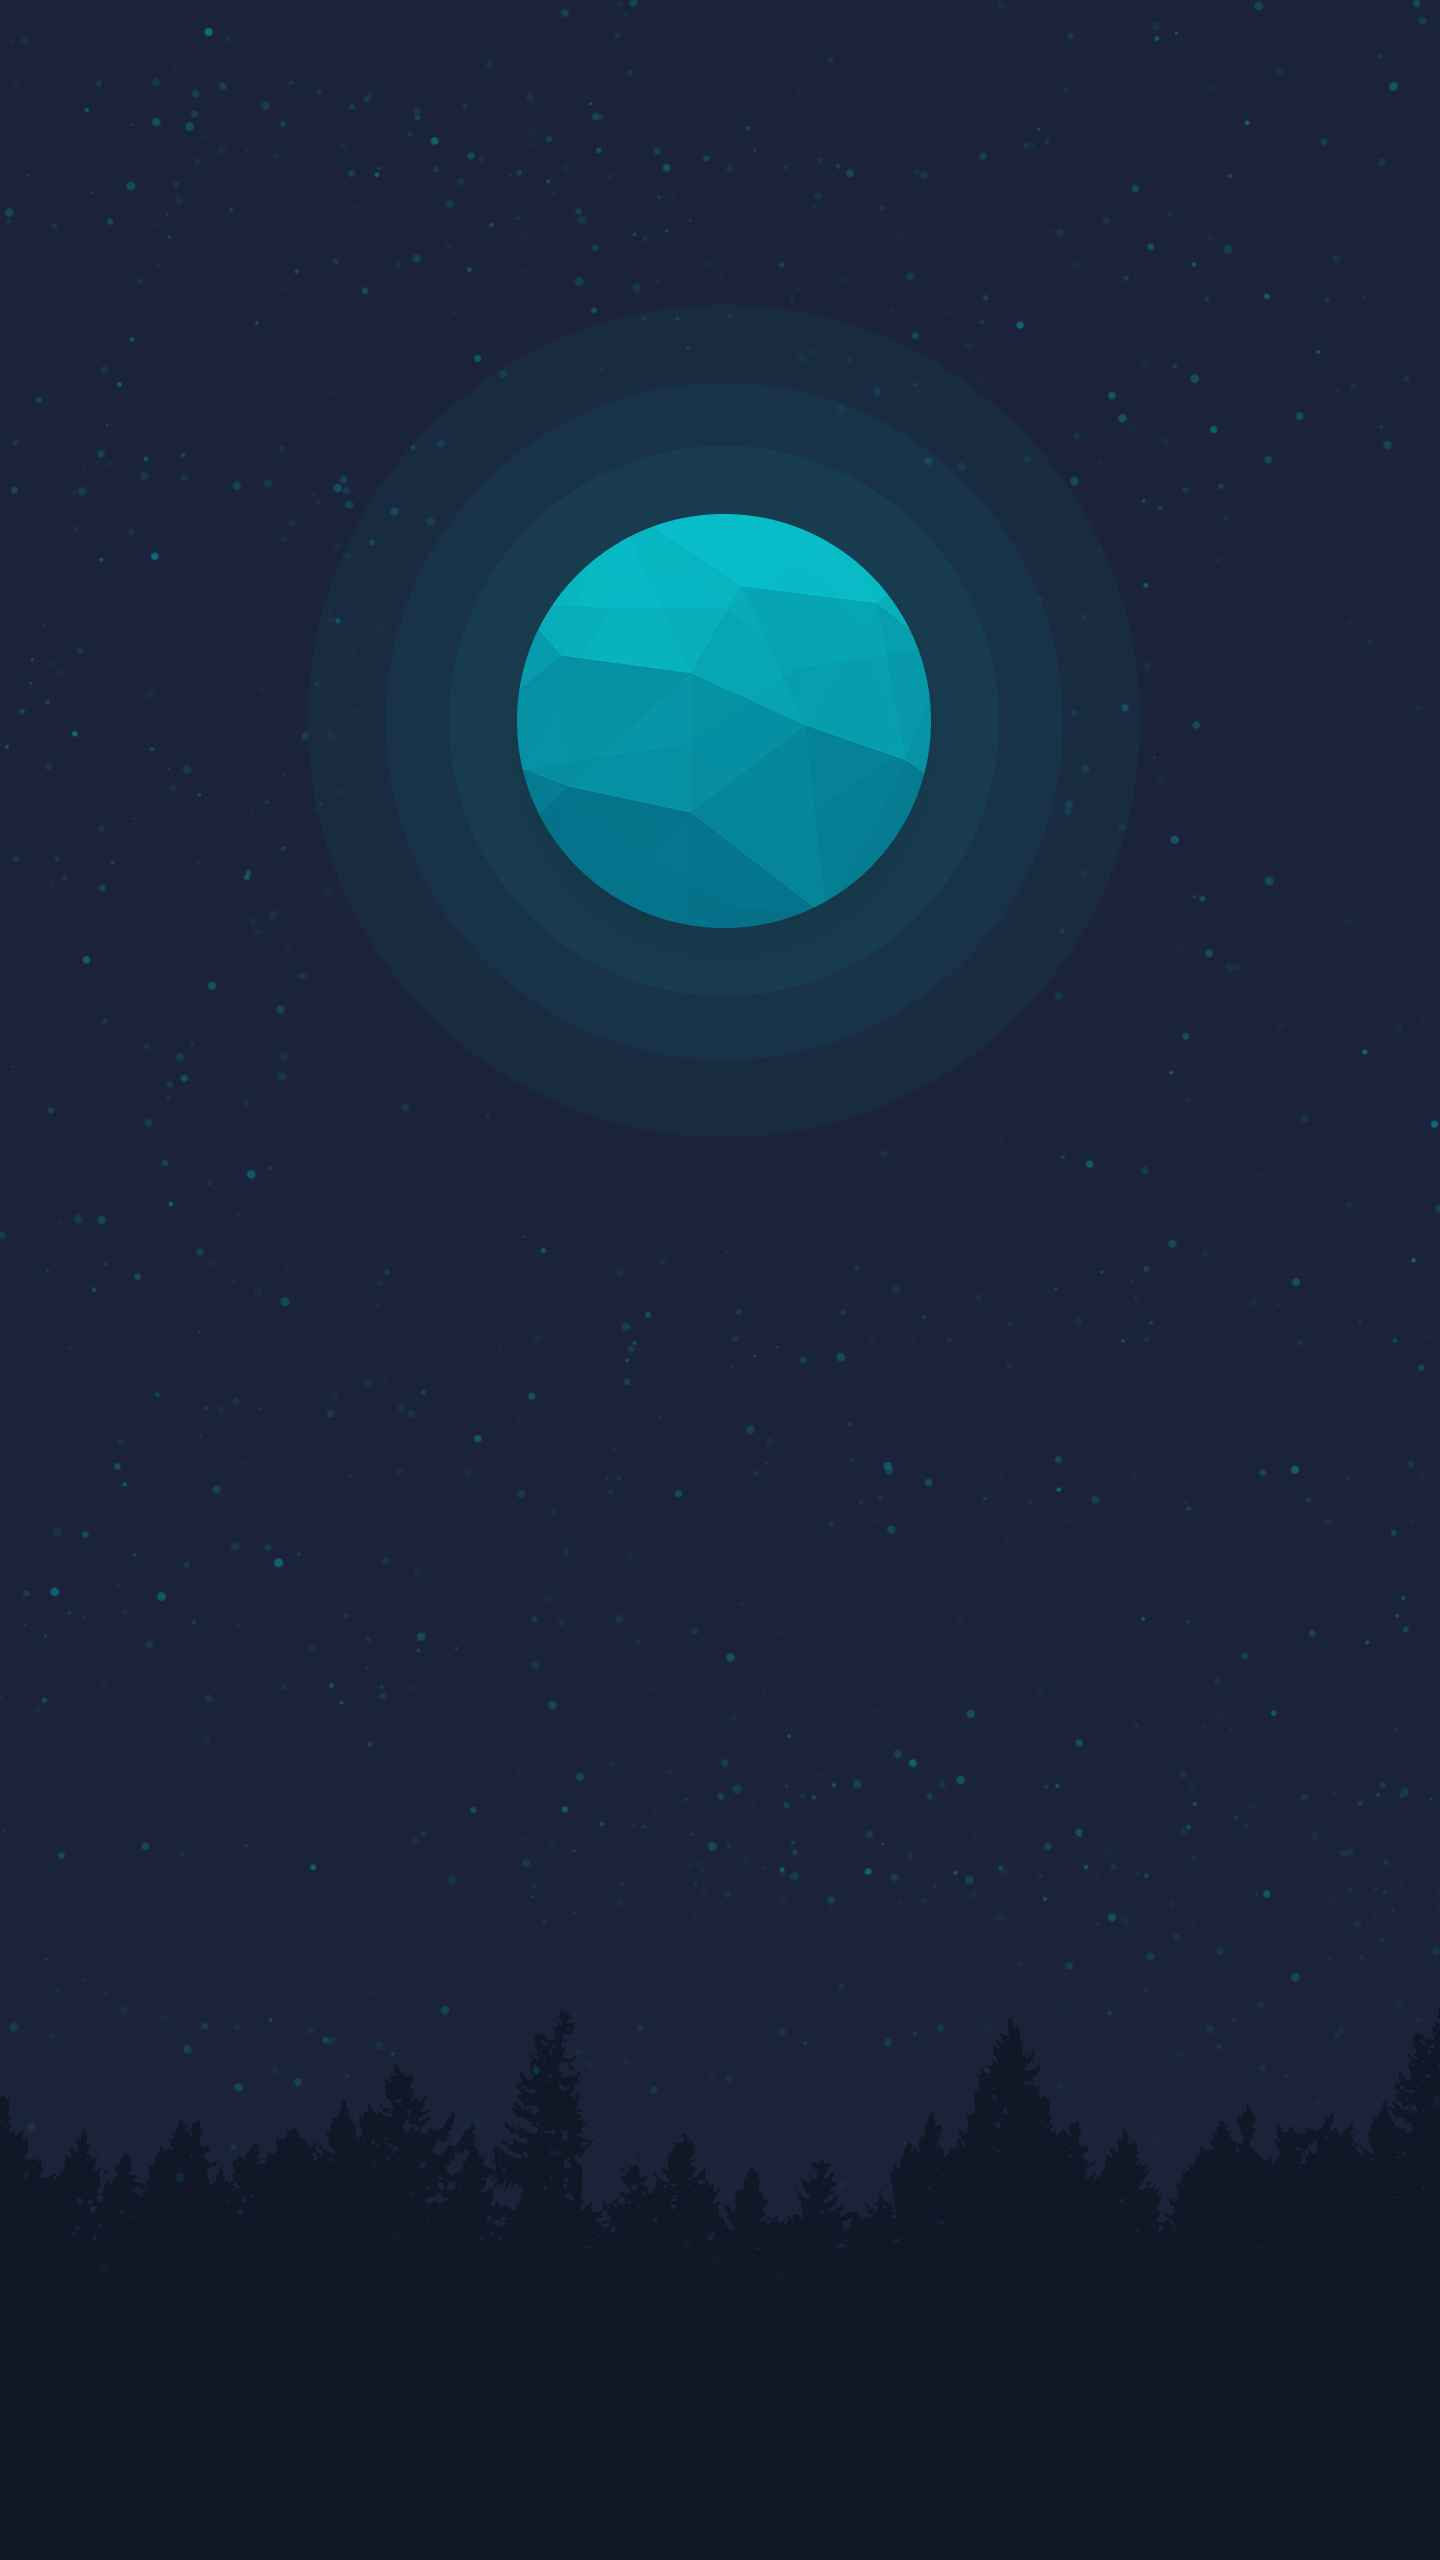 Blue Moon iPhone Wallpaper